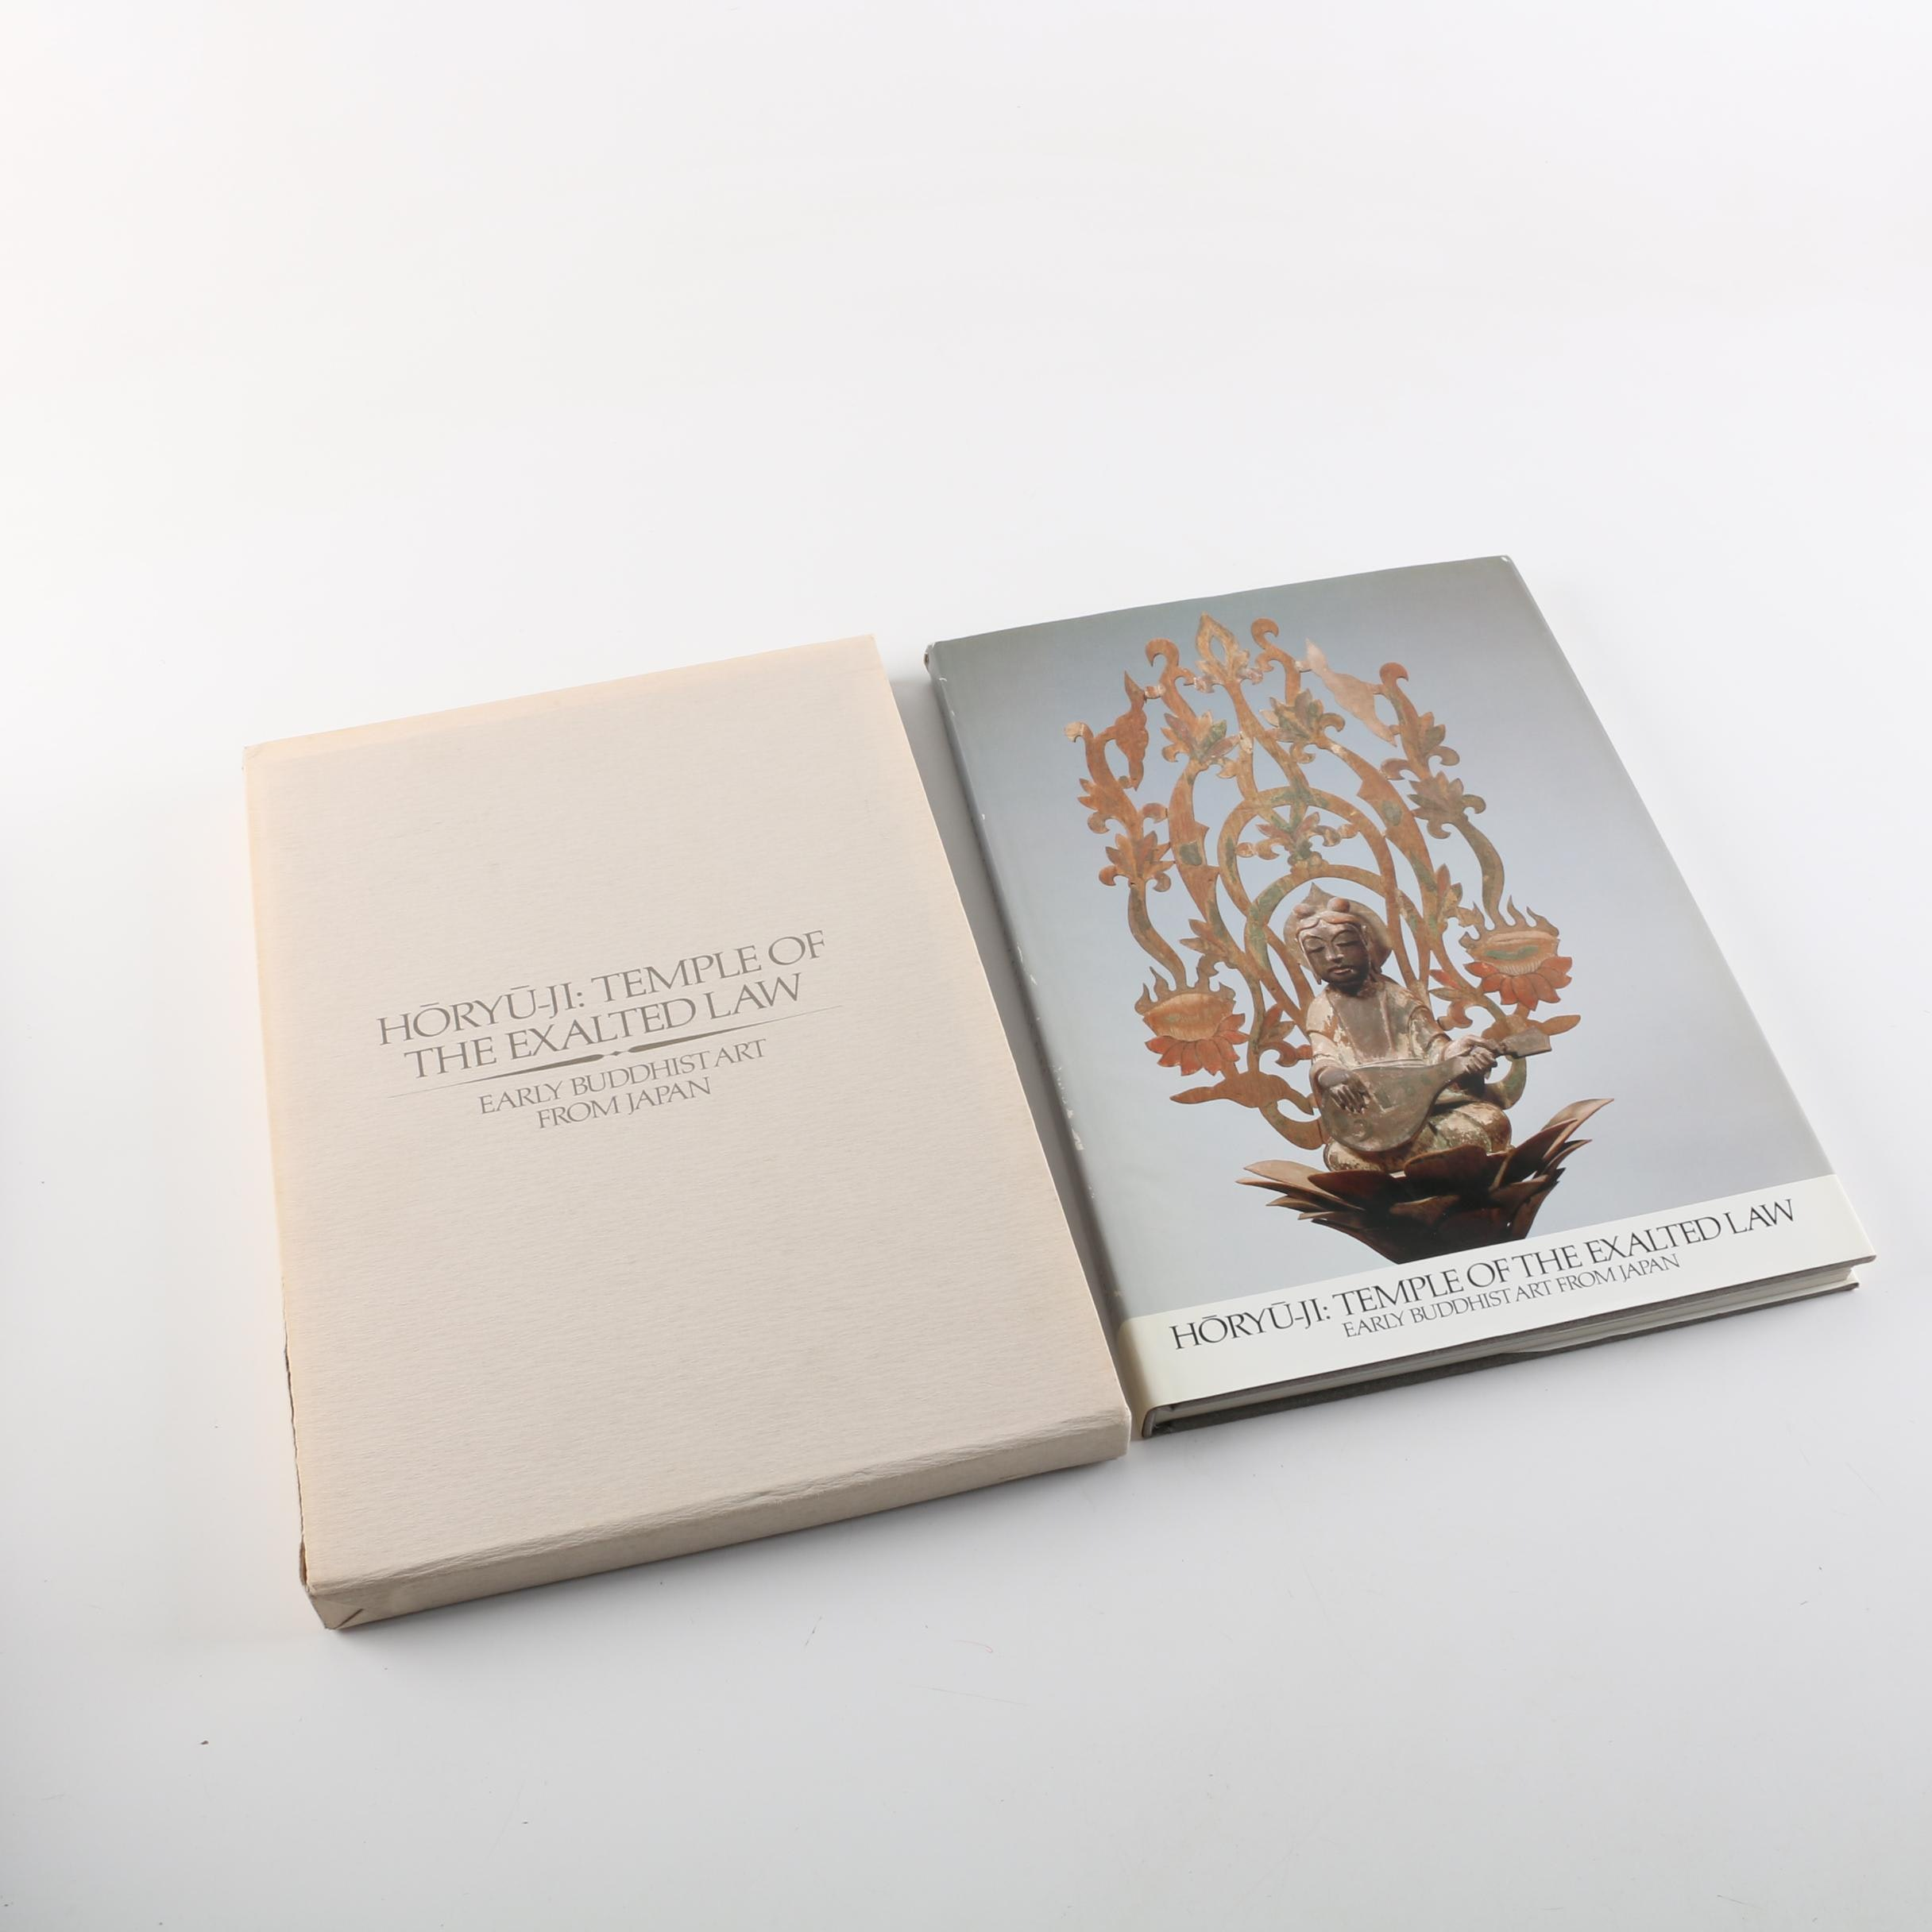 """1981 """"Horyu-Ji: Temple of the Exalted Law"""" Japan Society Exhibition Catalogue"""